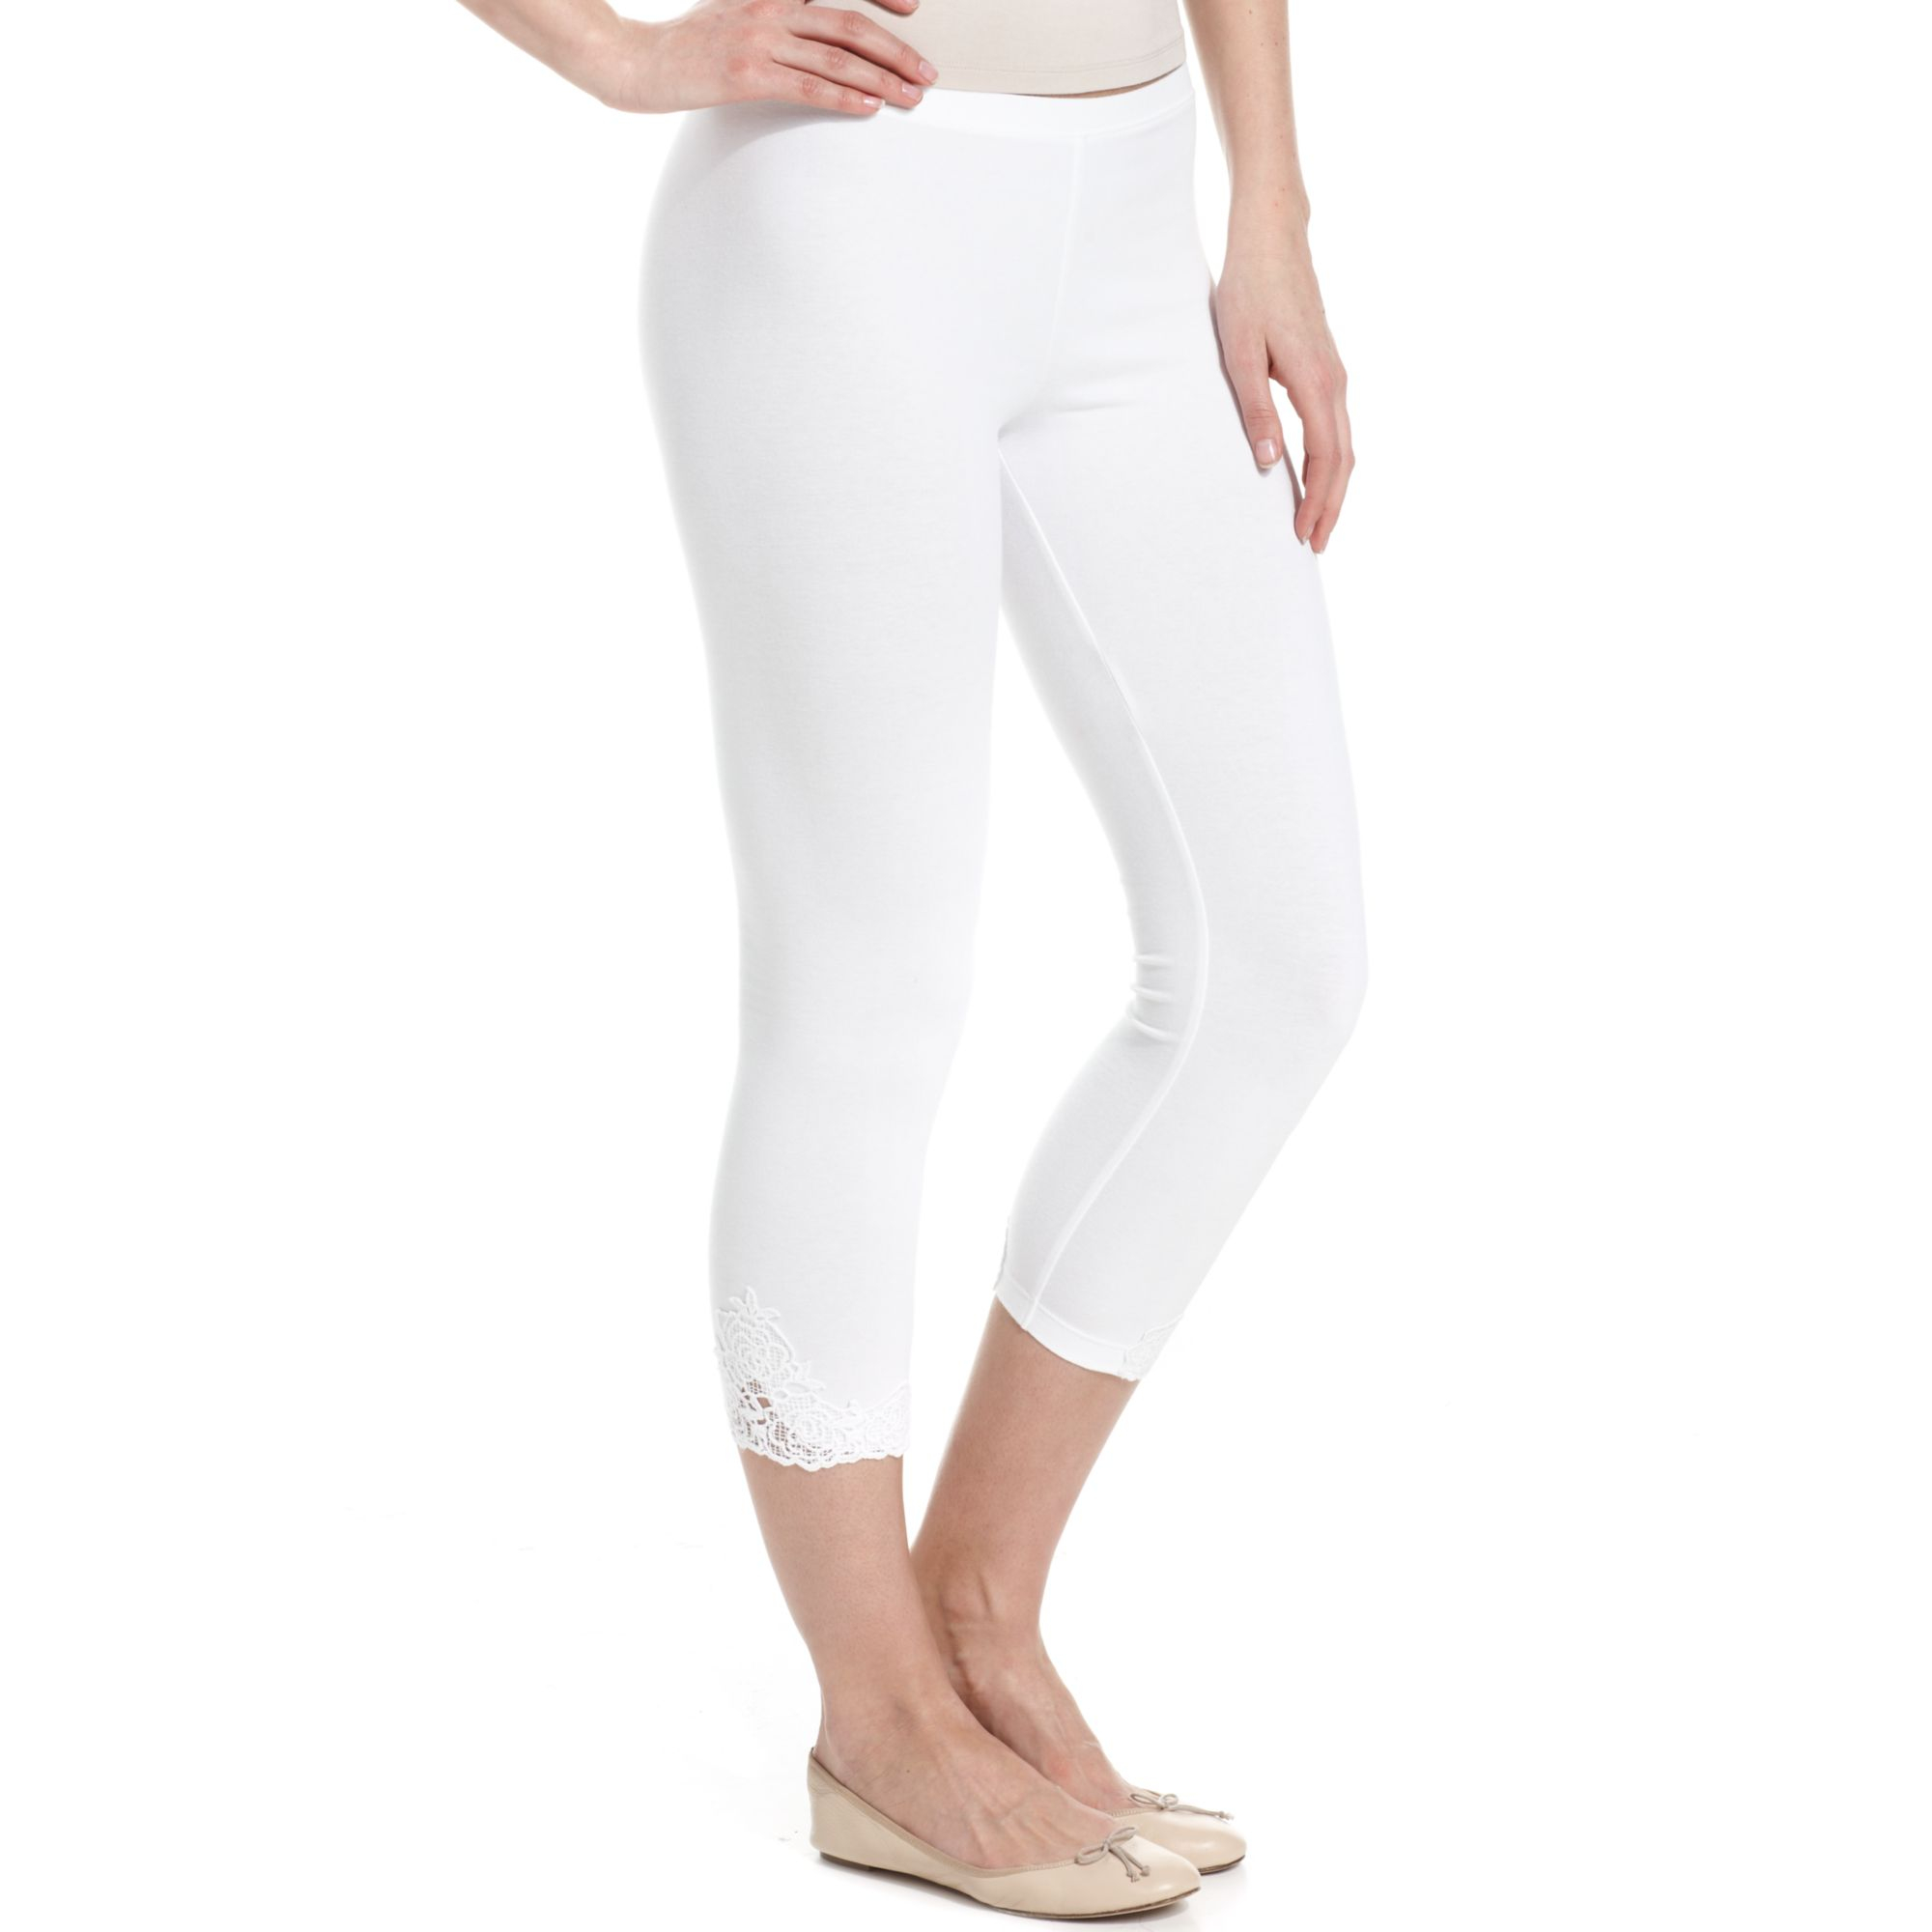 834e155bd2de Hue Crochet Trim Cotton Capri Leggings in White